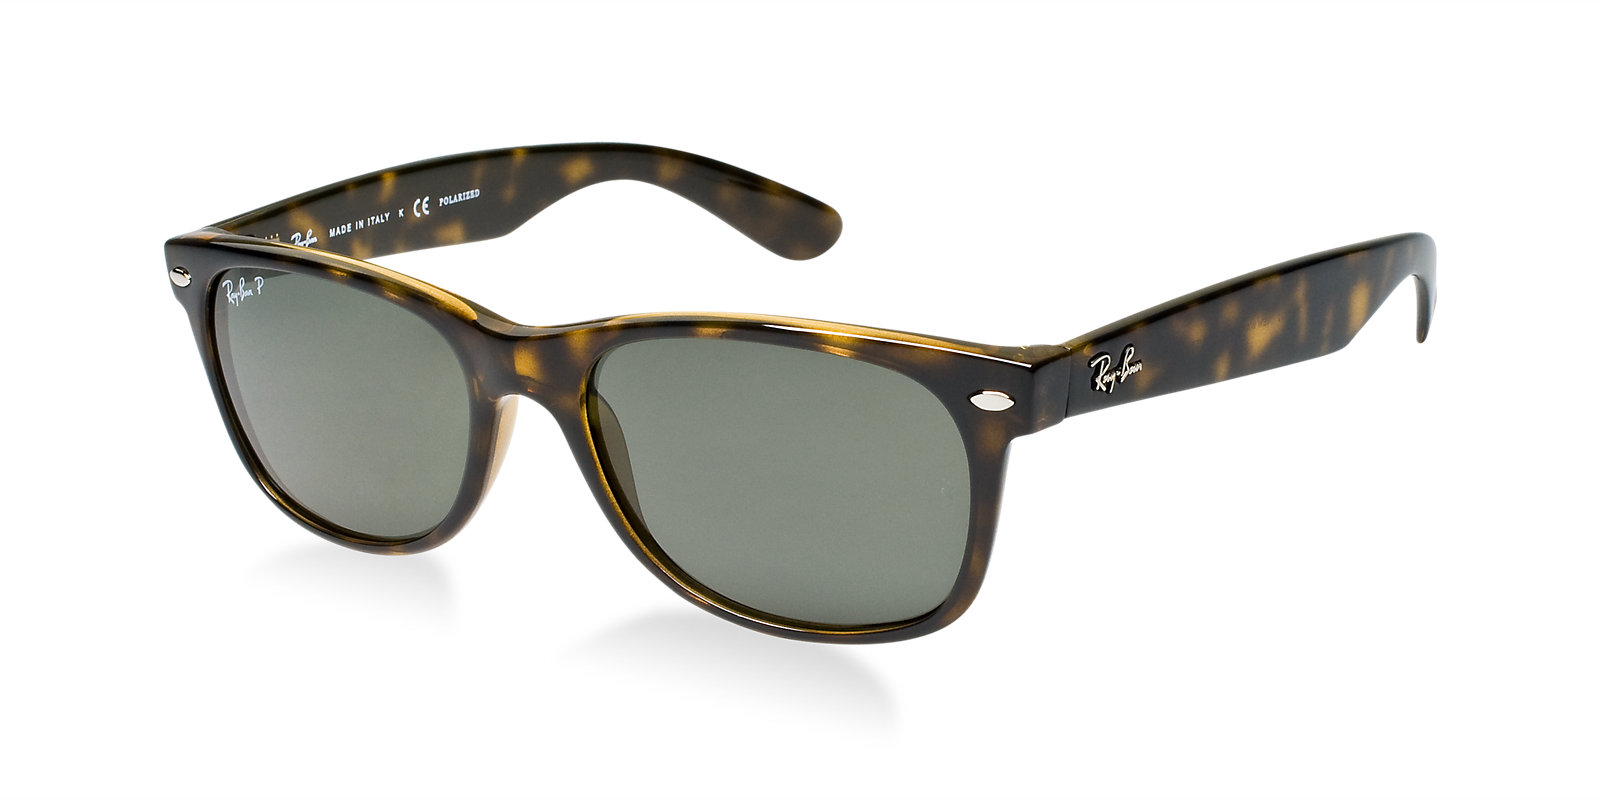 b8f0d329c Previous; Next. Previous; Next. RAY-BAN RB2132 902/58 TORTOISE POLARIZED  NEW WAYFARER SUNGLASSES